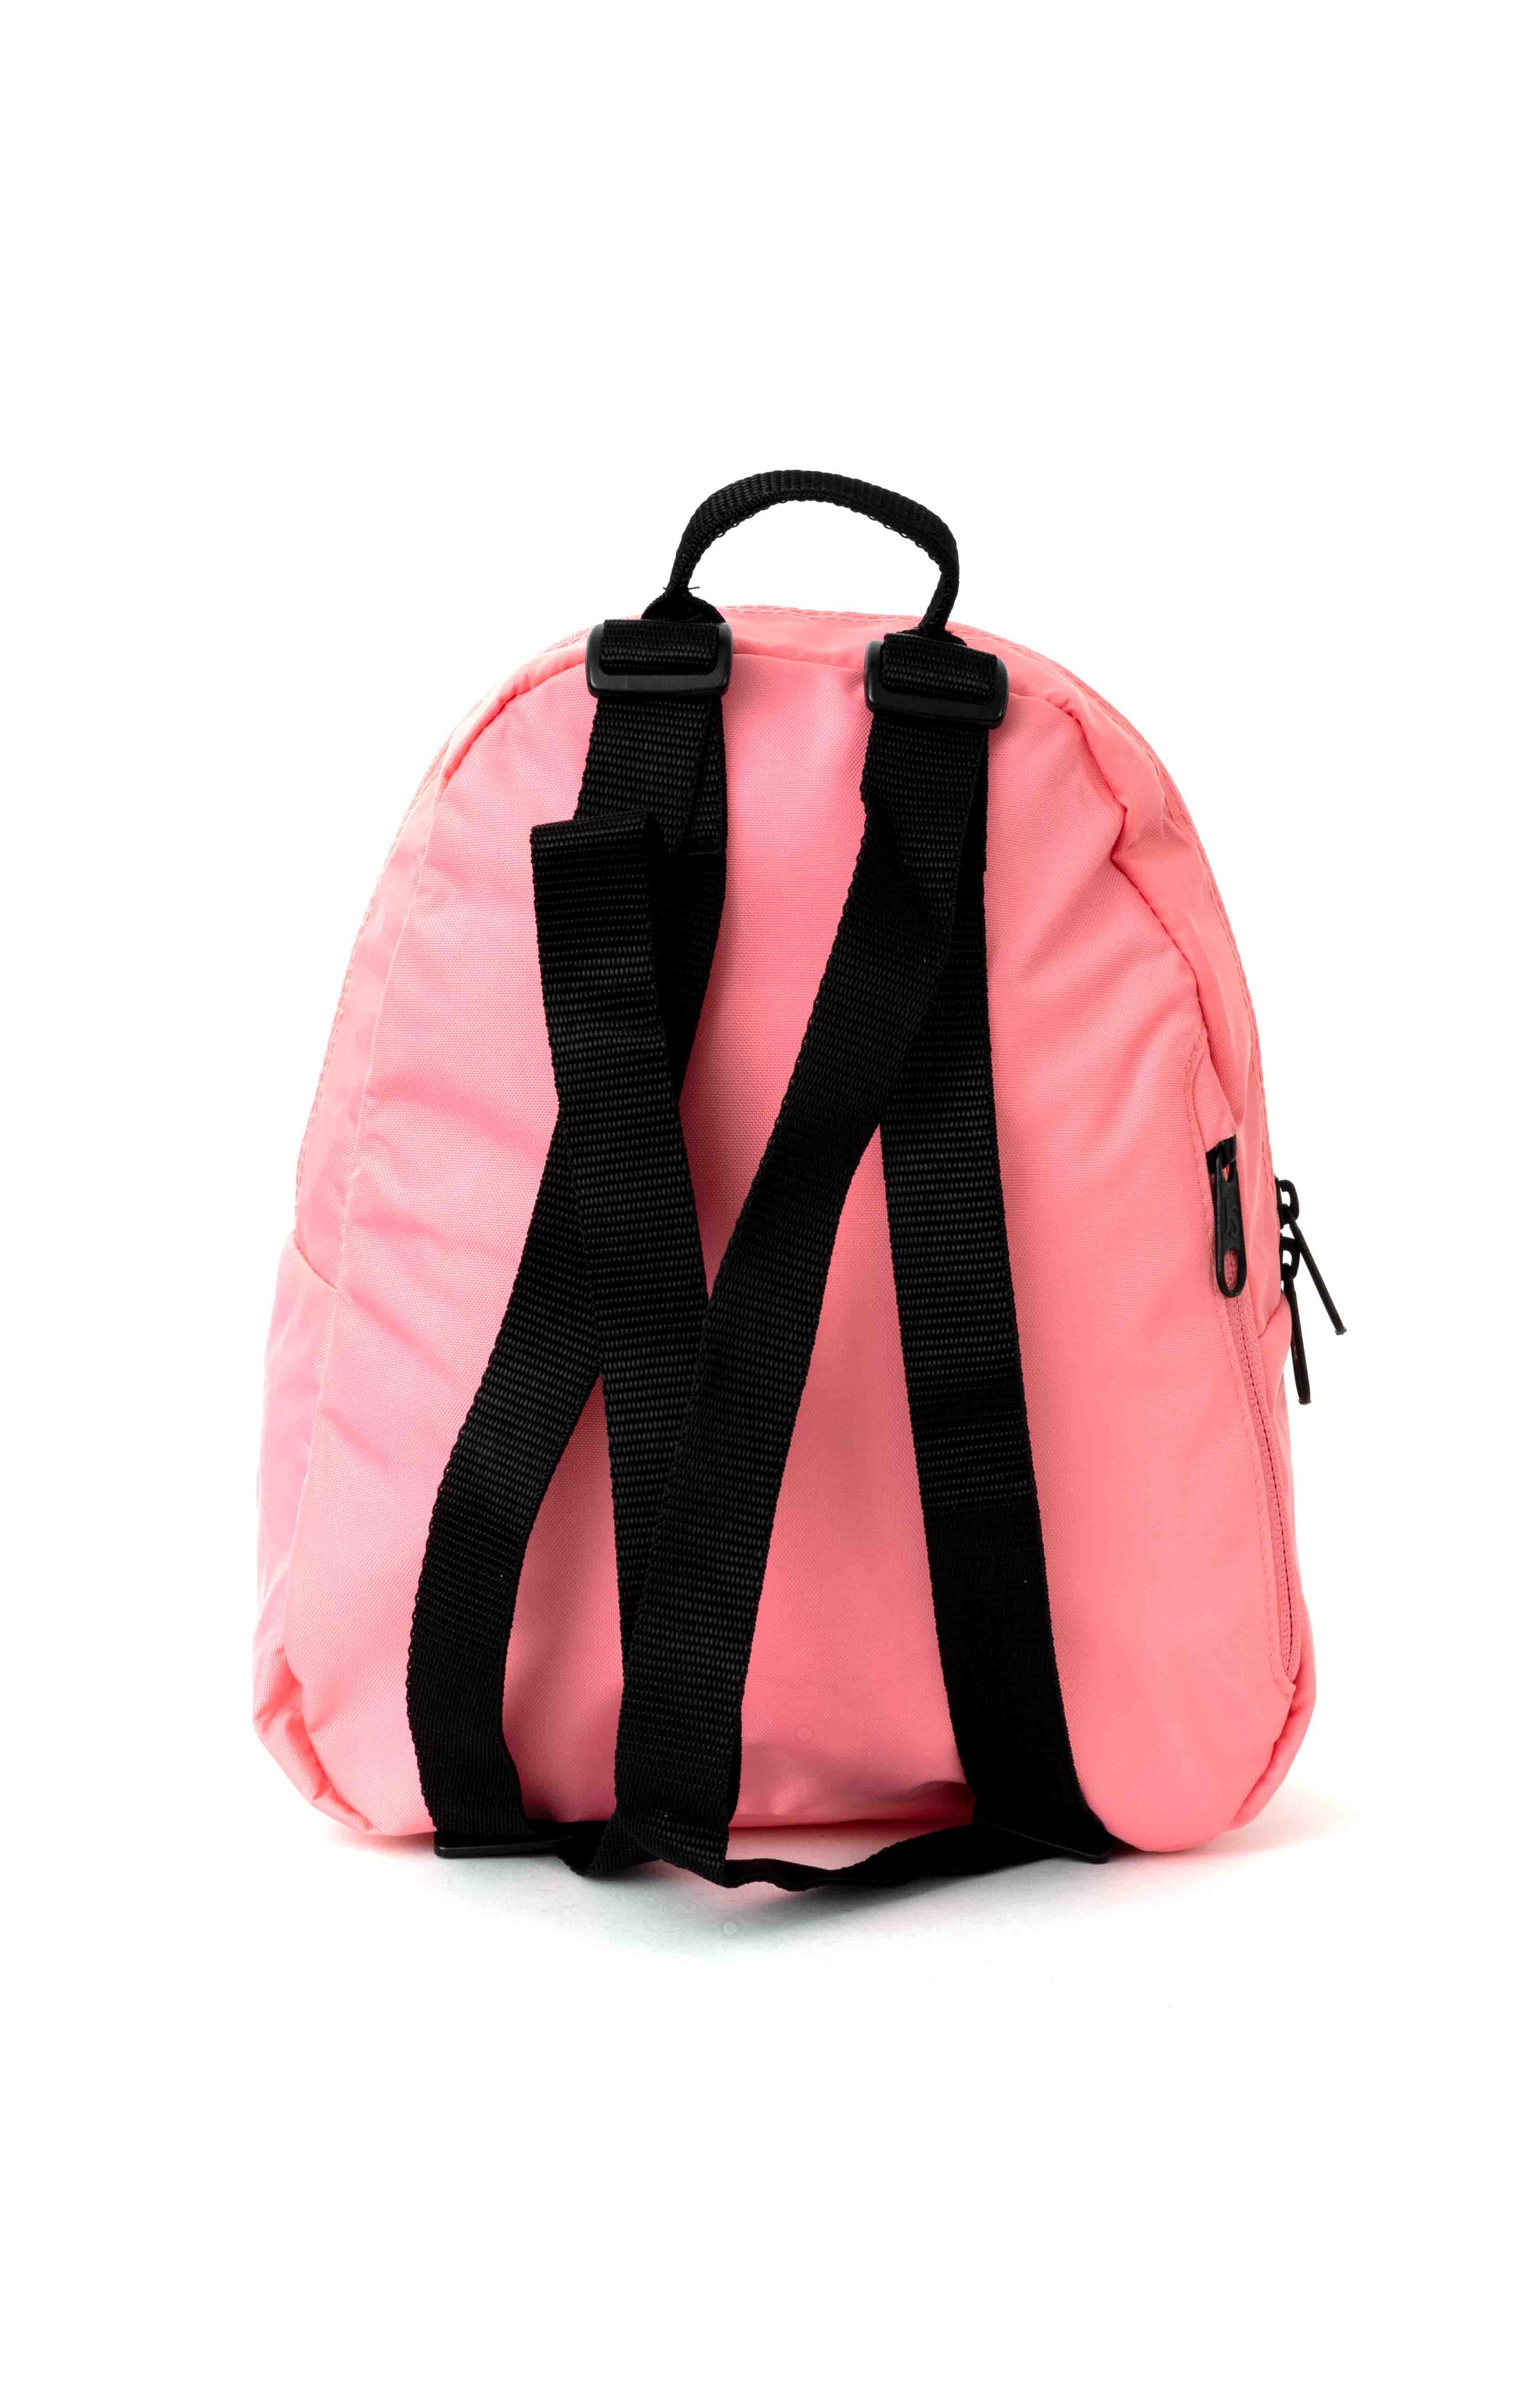 Half Pint TR Backpack - Strawberry Pink  3